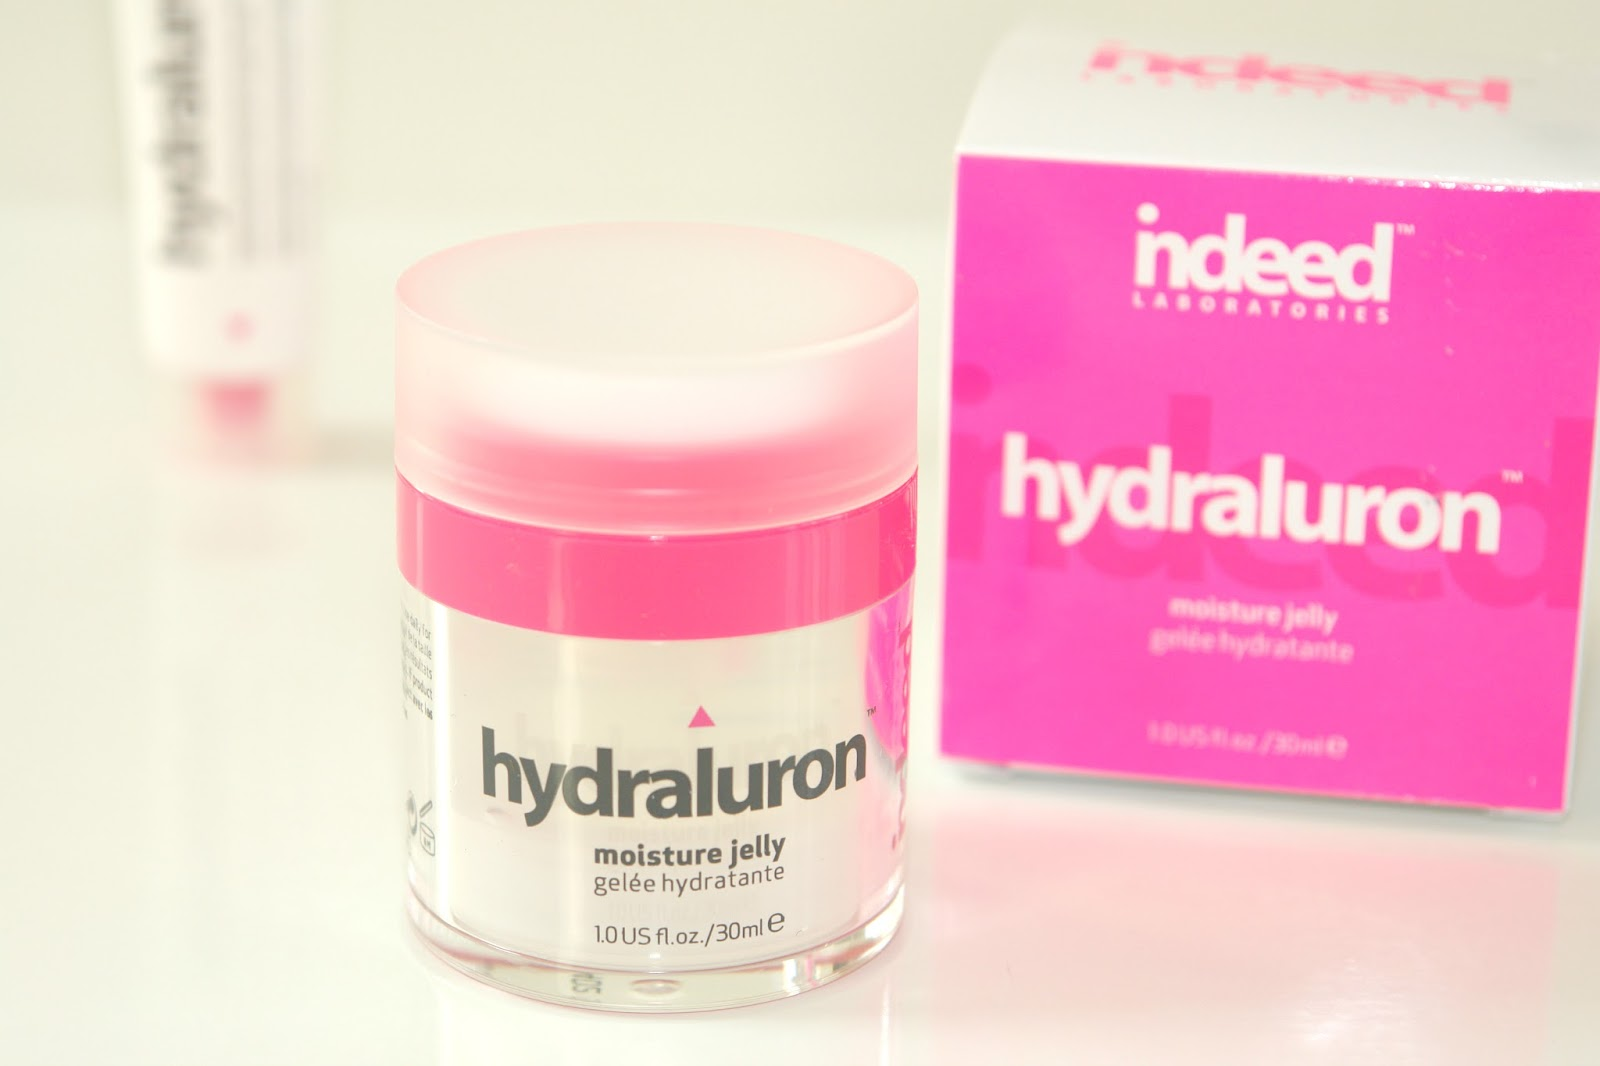 Hydraluron Moisture Jelly review, beauty, Indeed Labs, review, skincare, UK blog, blogger